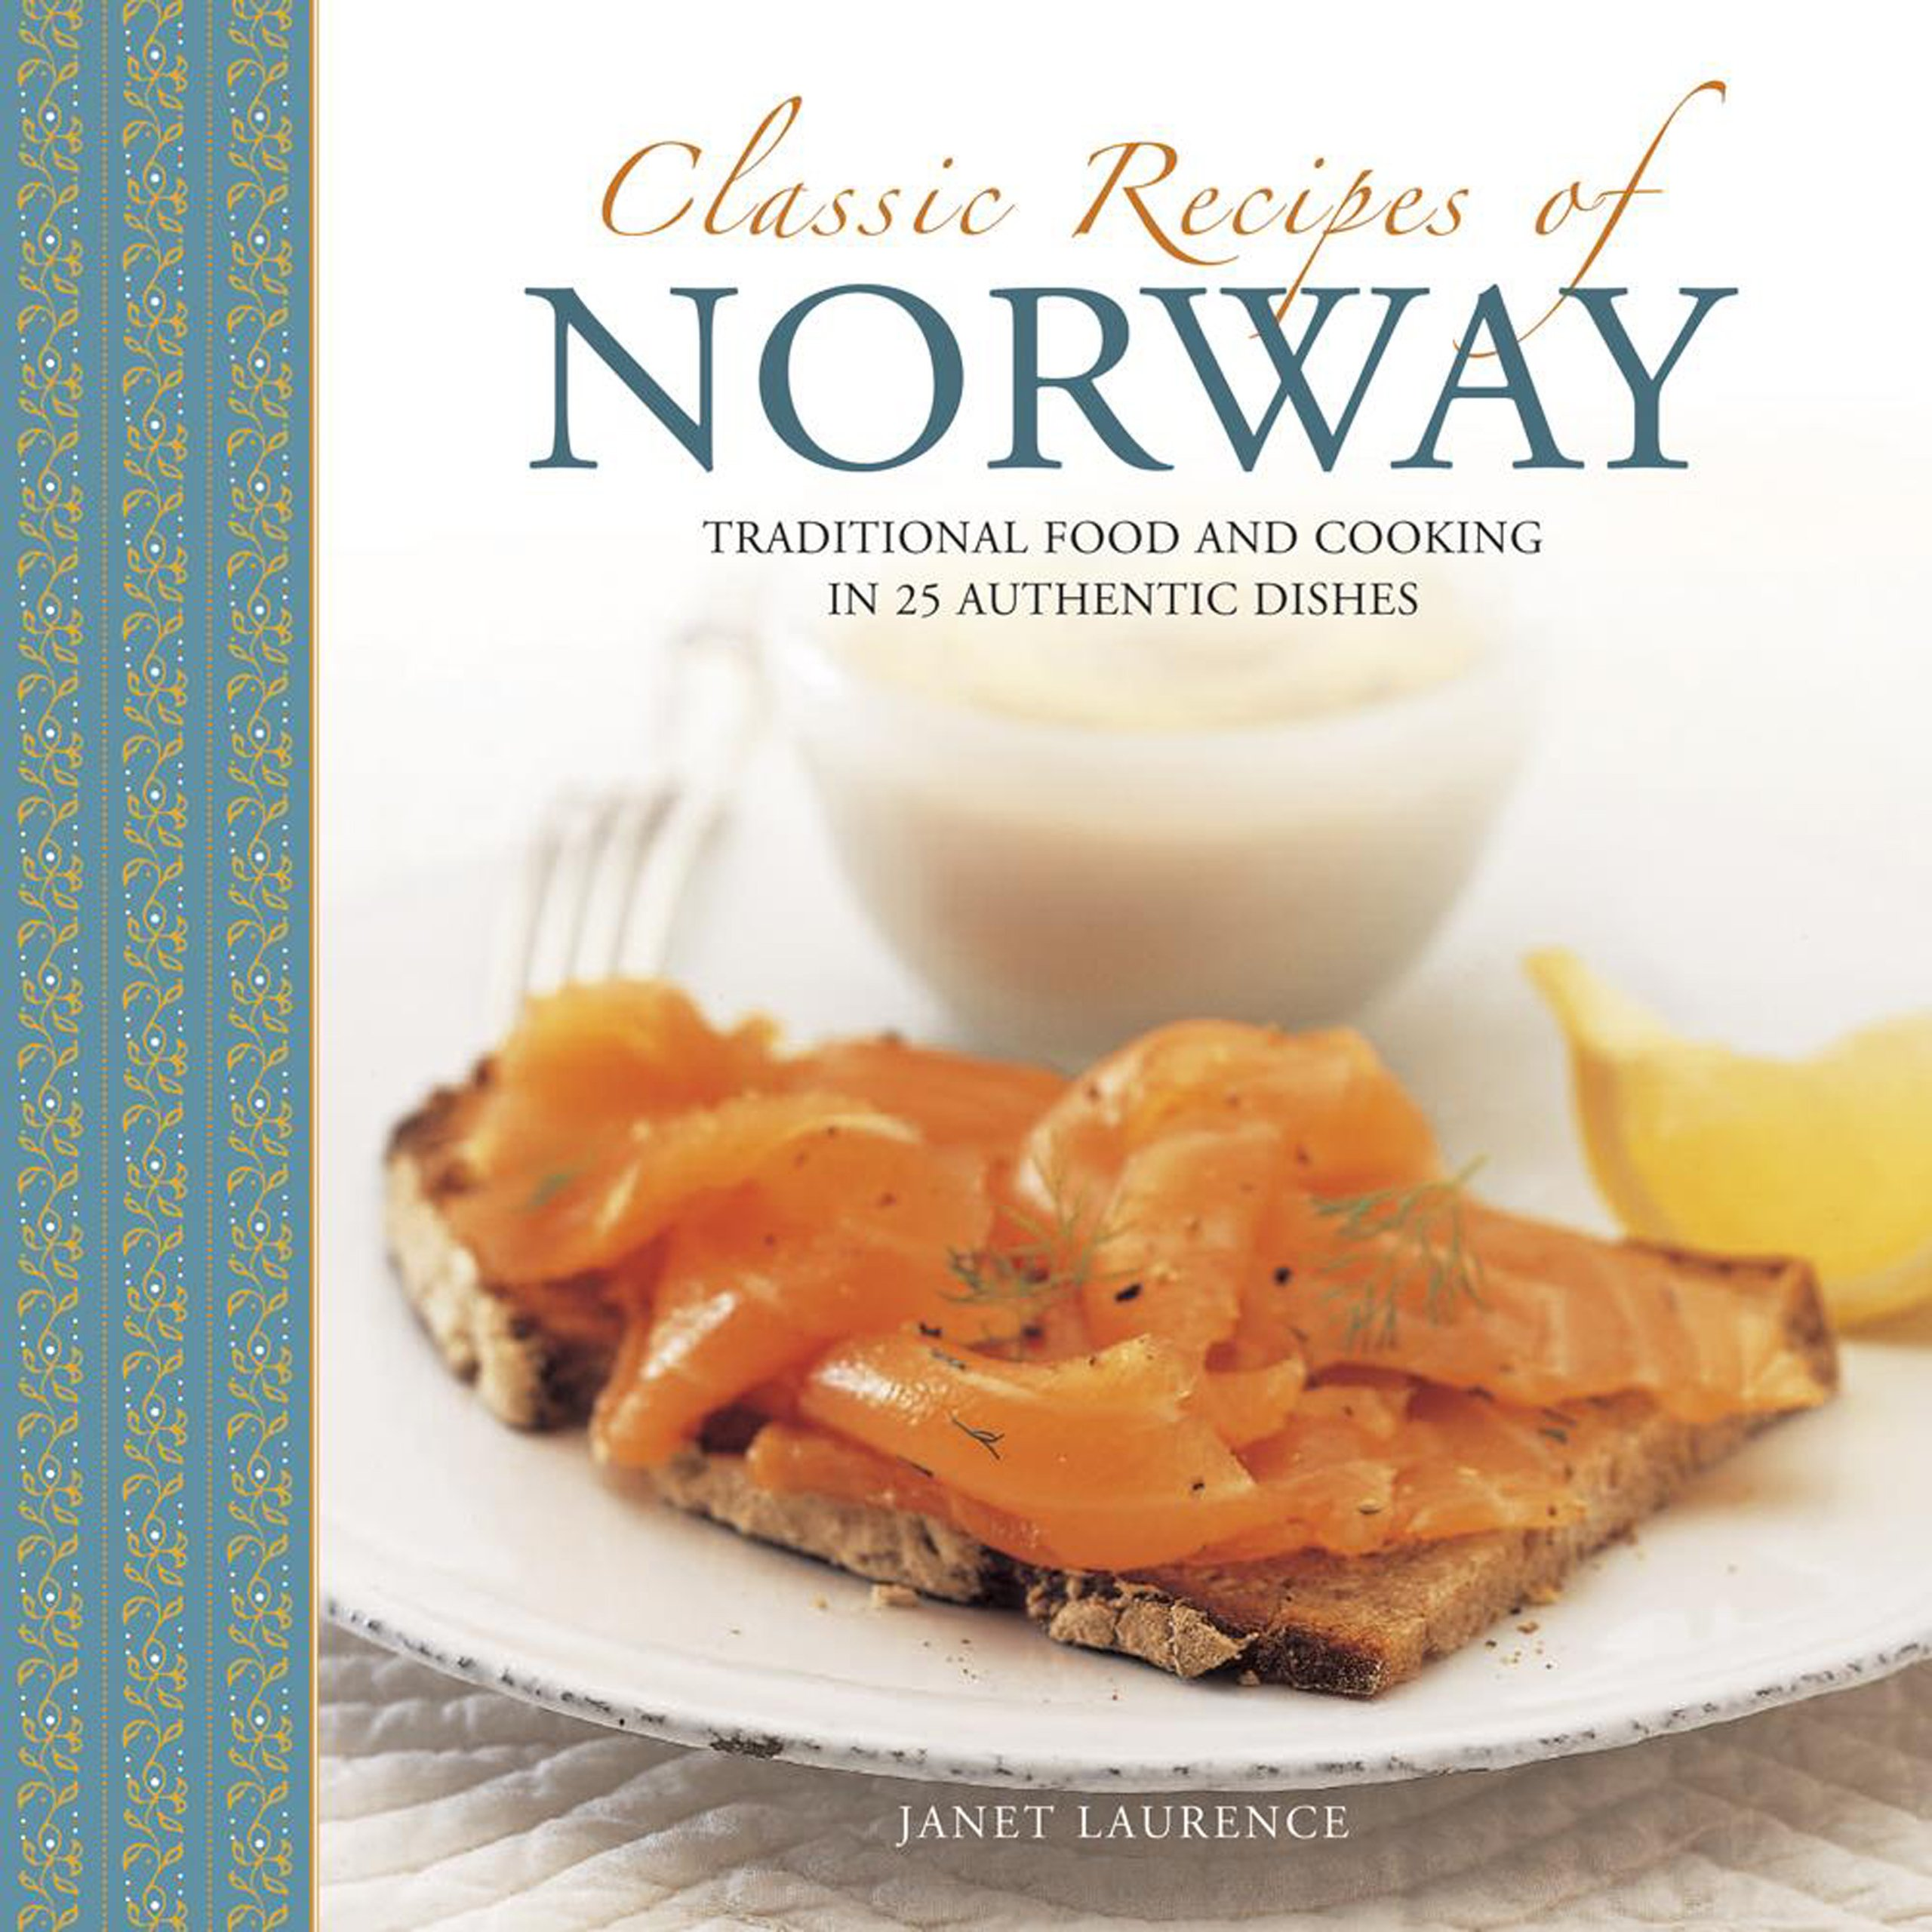 Classic recipes of norway traditional food and cooking in 25 classic recipes of norway traditional food and cooking in 25 authentic dishes janet laurence 9780754830191 amazon books forumfinder Gallery